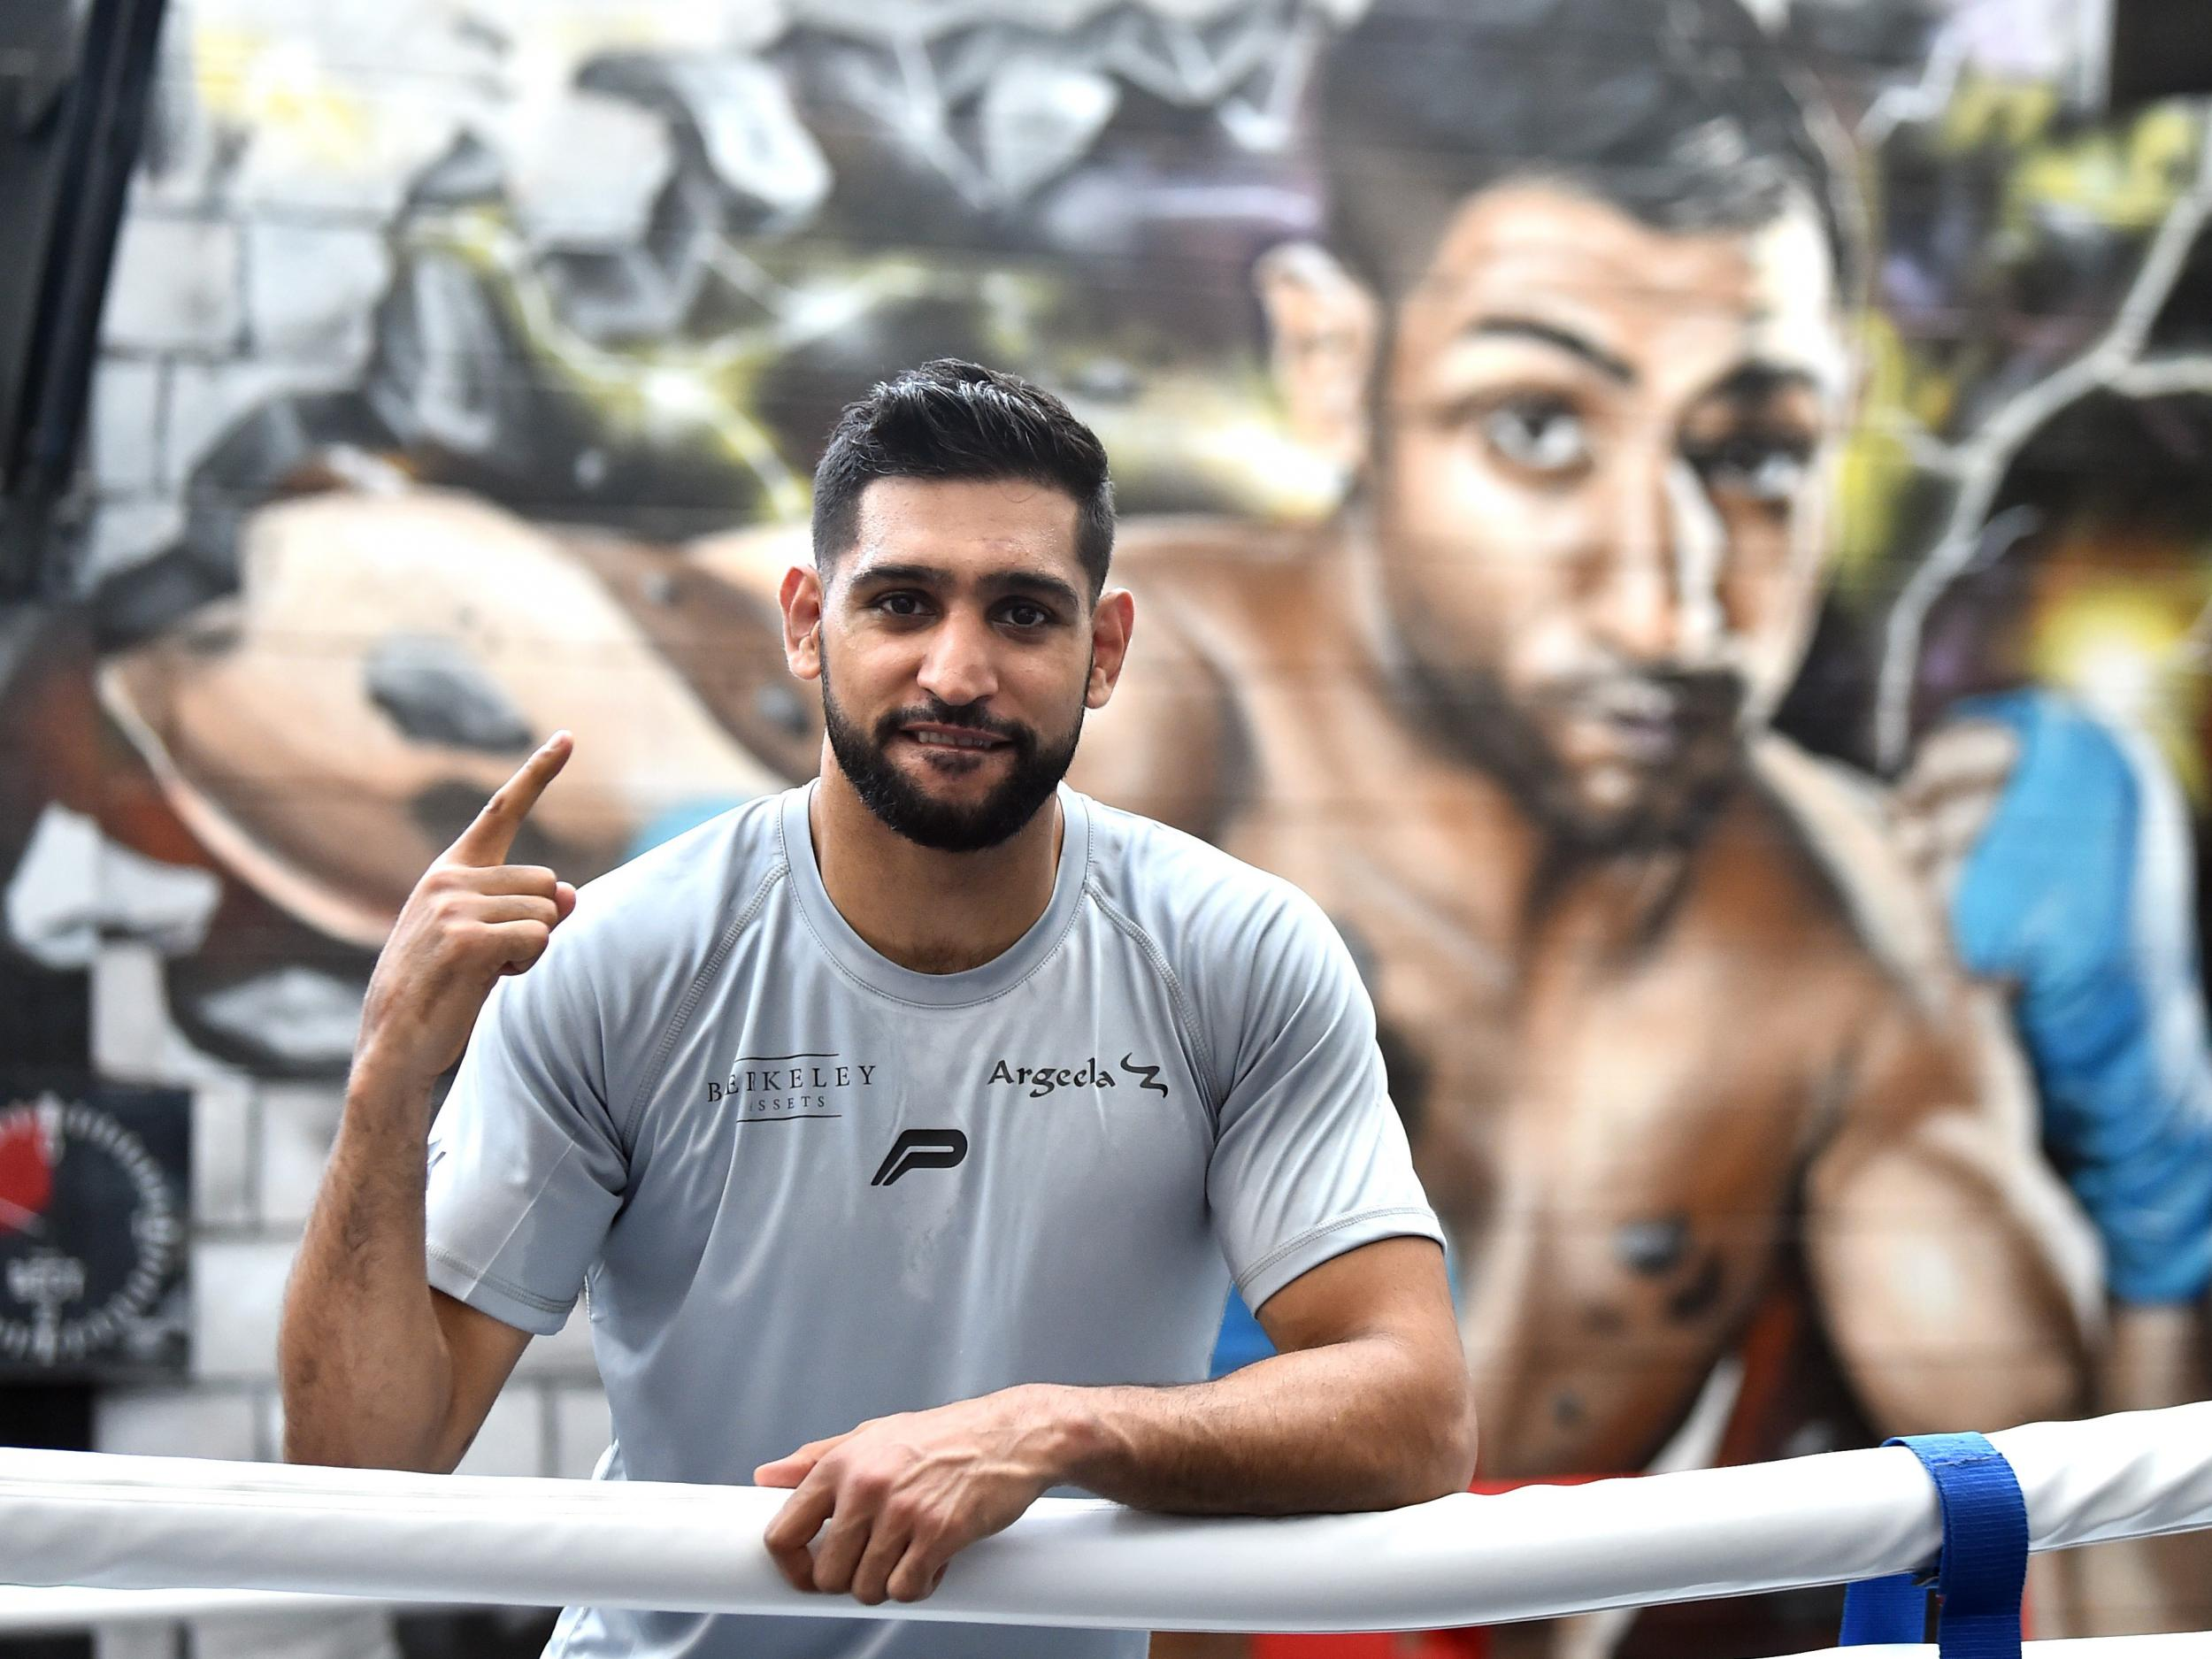 Amir Khan says virus 'man-made' to kill elderly 'while they test 5G'